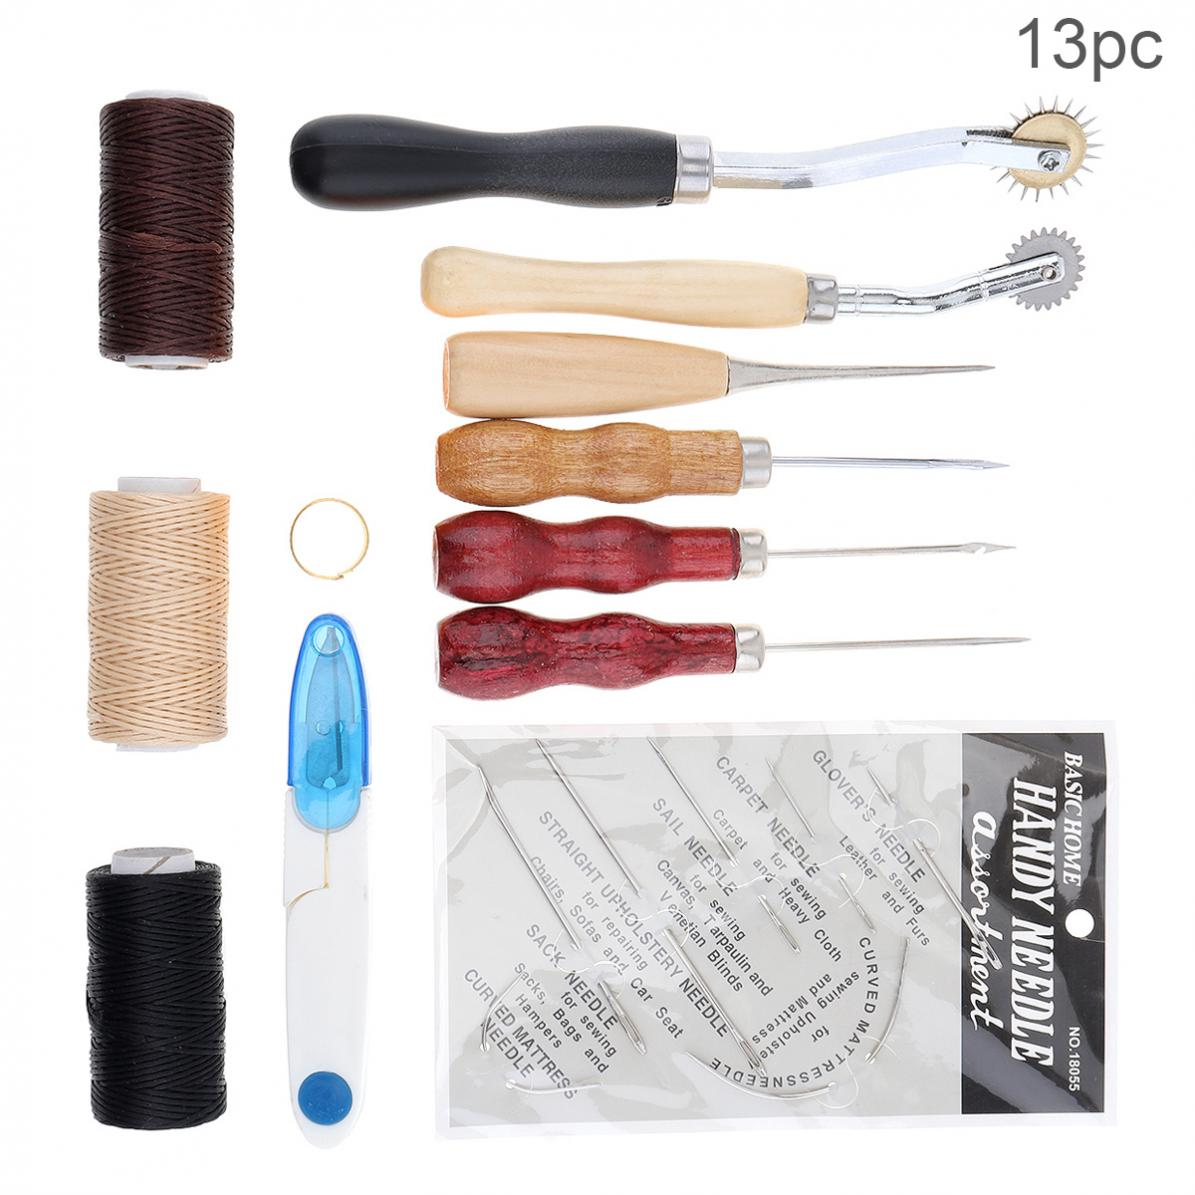 Professional 13pcs/set DIY Leather Craft Tools Kit Handmade Sewing Stitching Punch Carving Work Kit Set Saddle Groover Leather